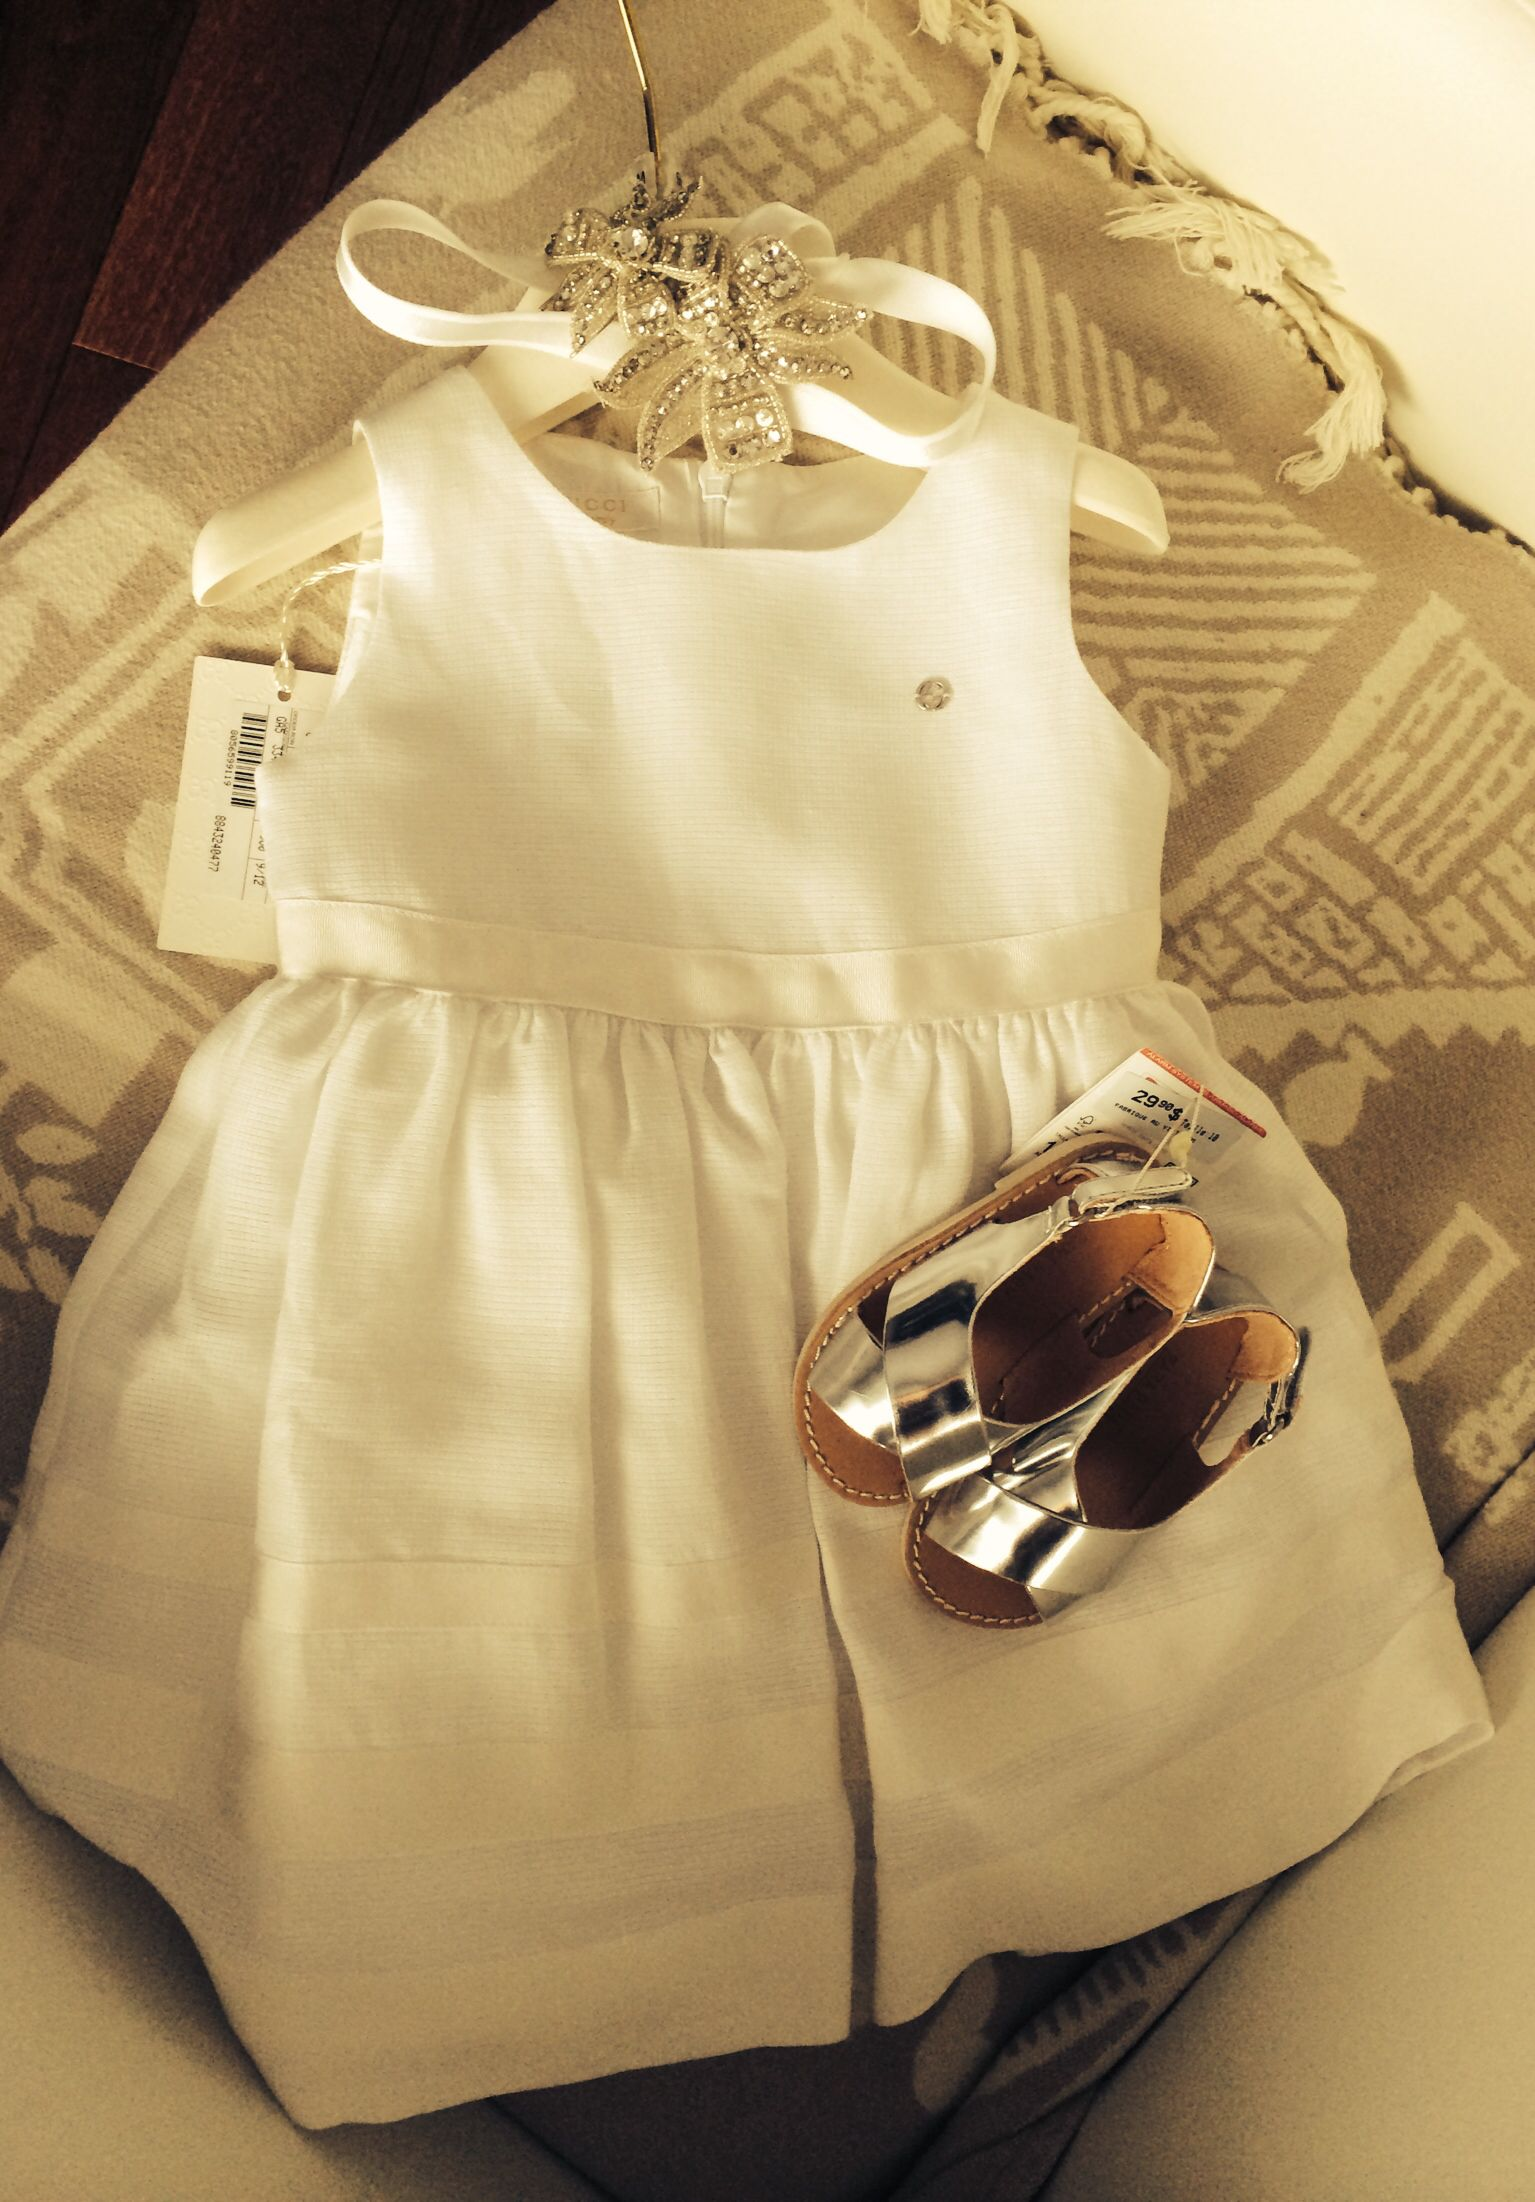 520af6bd6 Baby girl baptism outfit: Gucci white teared dress, Zara chrome sandals and  a headband with rhinestones (part of the headpiece worn by her mother when  she ...